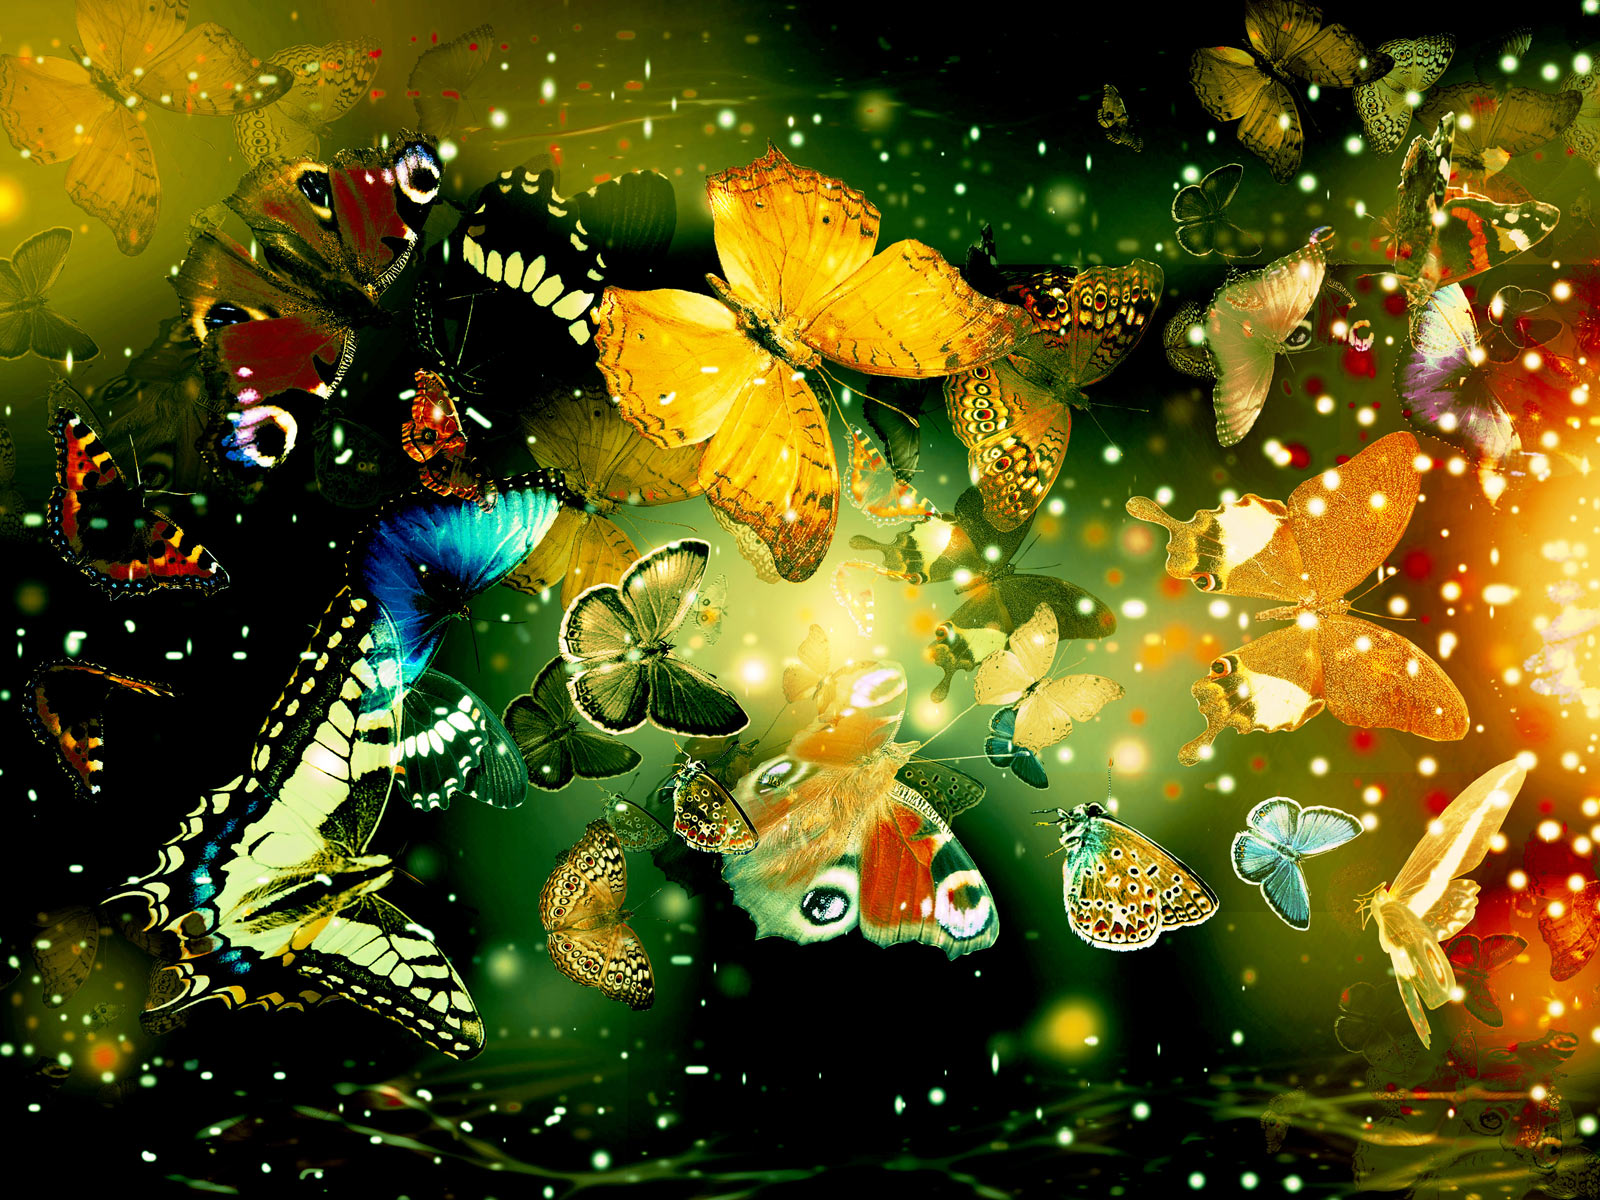 Butterflies desktop backgrounds hd Wallpaper High Quality Wallpapers 1600x1200